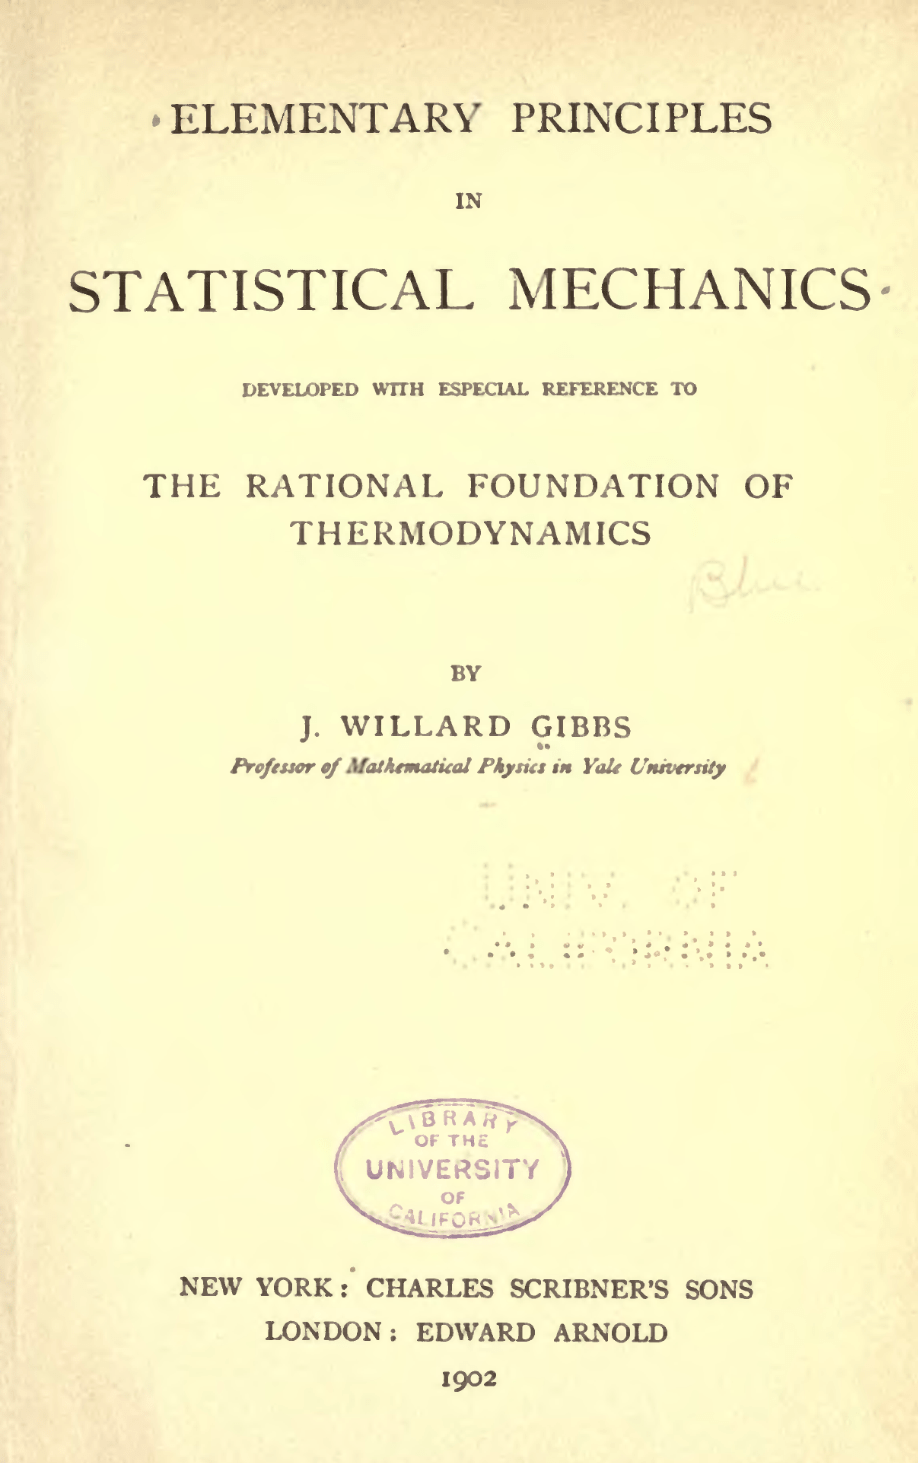 Elementary Principles in Statistical Mechanics  Wikipedia